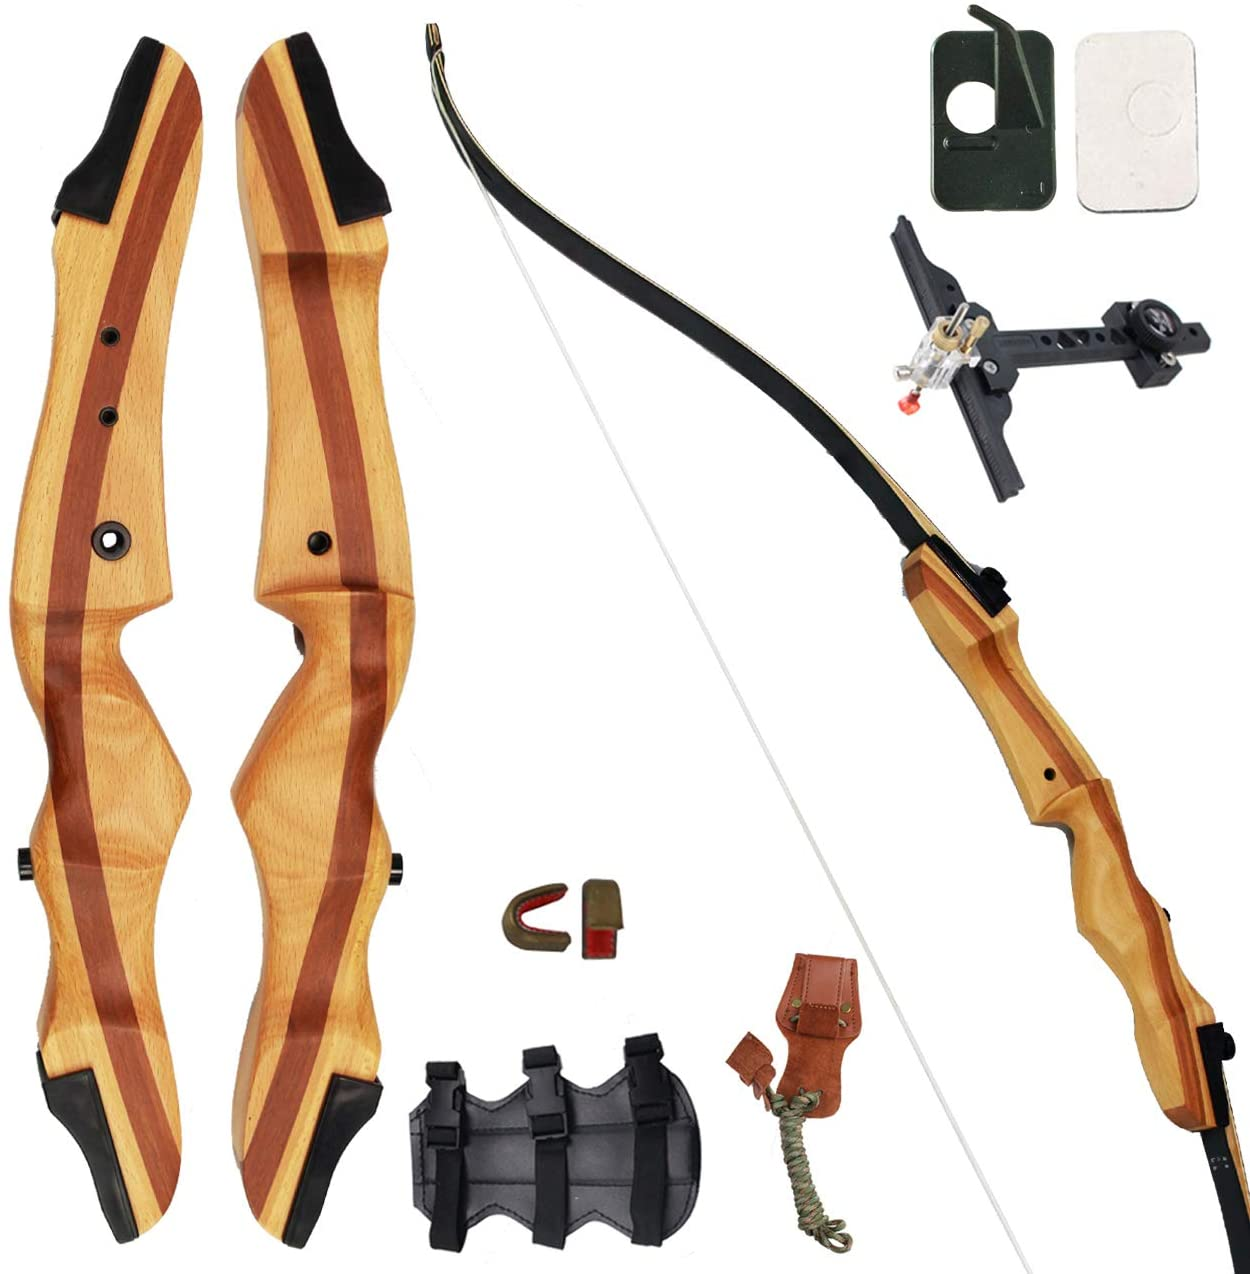 Takedown Recurve Bow Hunting Wooden Archery Bow Stringer for Right Left Hand - Morealis